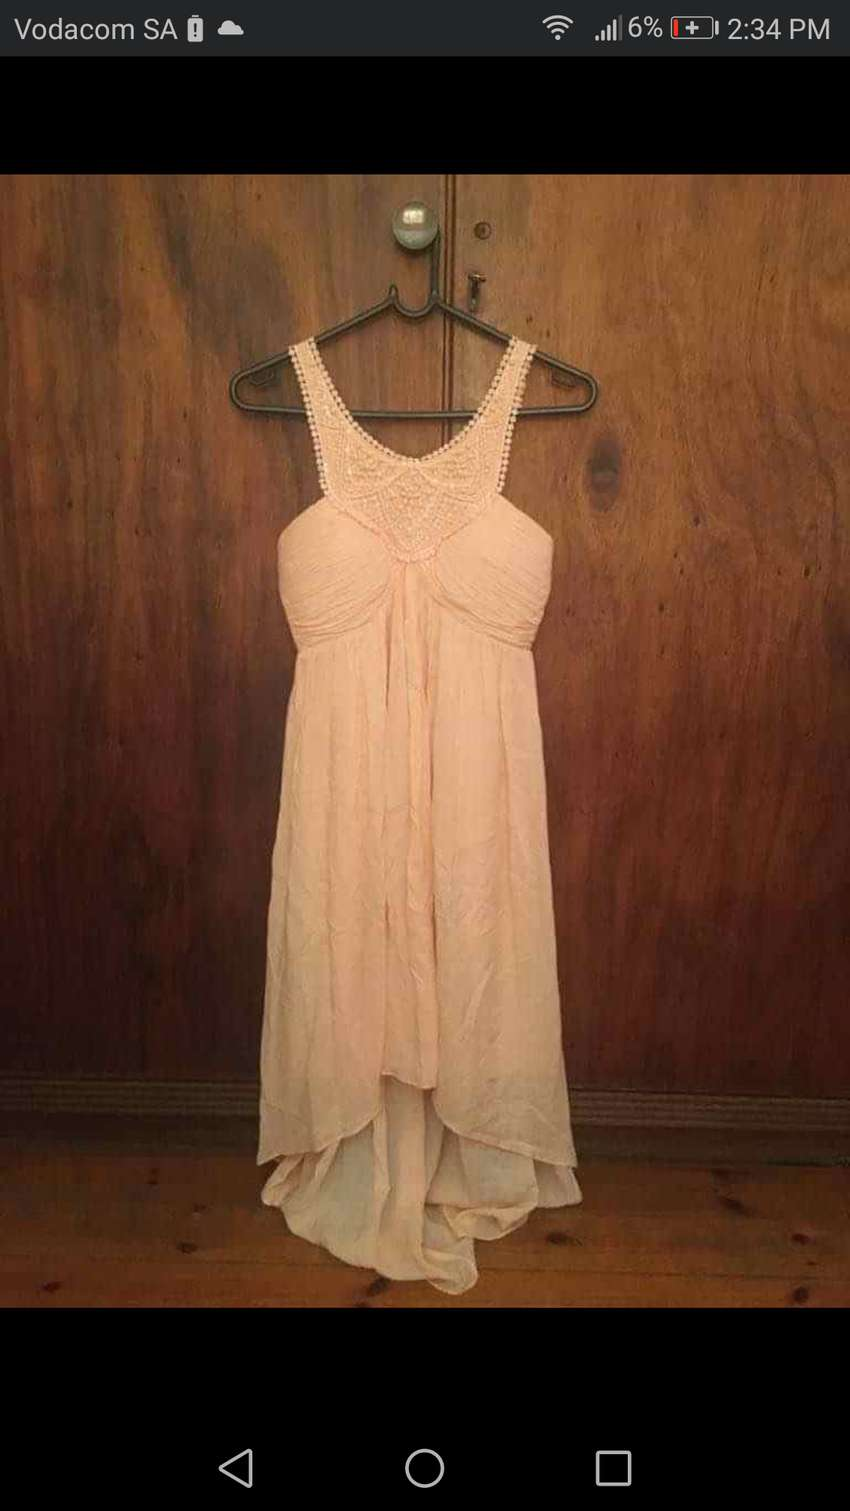 Peach halterneck dress from Forever new, size 6/8 0